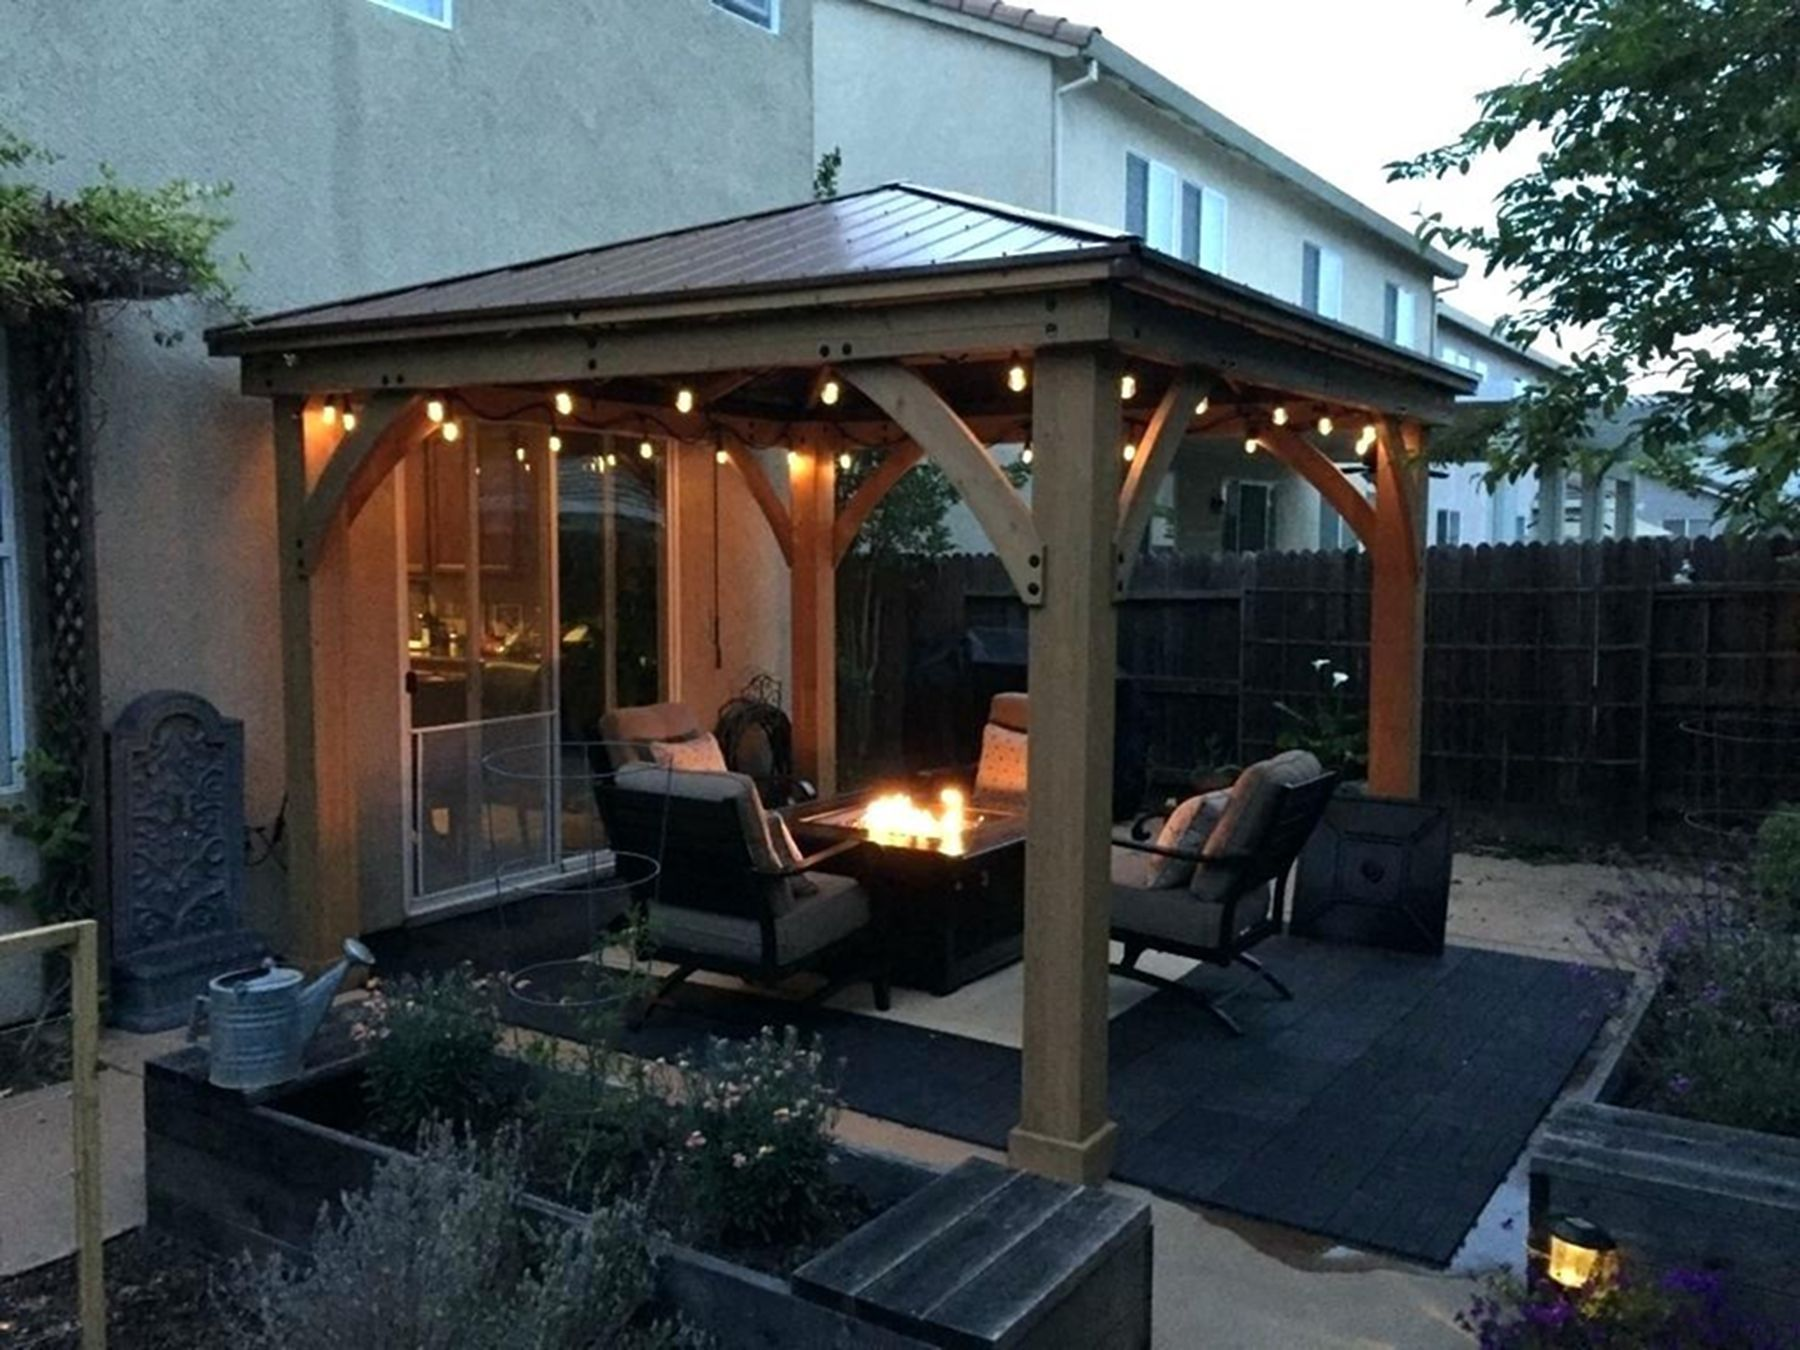 12 Extraordinary Gazebo Design Ideas For Places To Gather With Families Backyard Backyard Gazebo Patio Gazebo